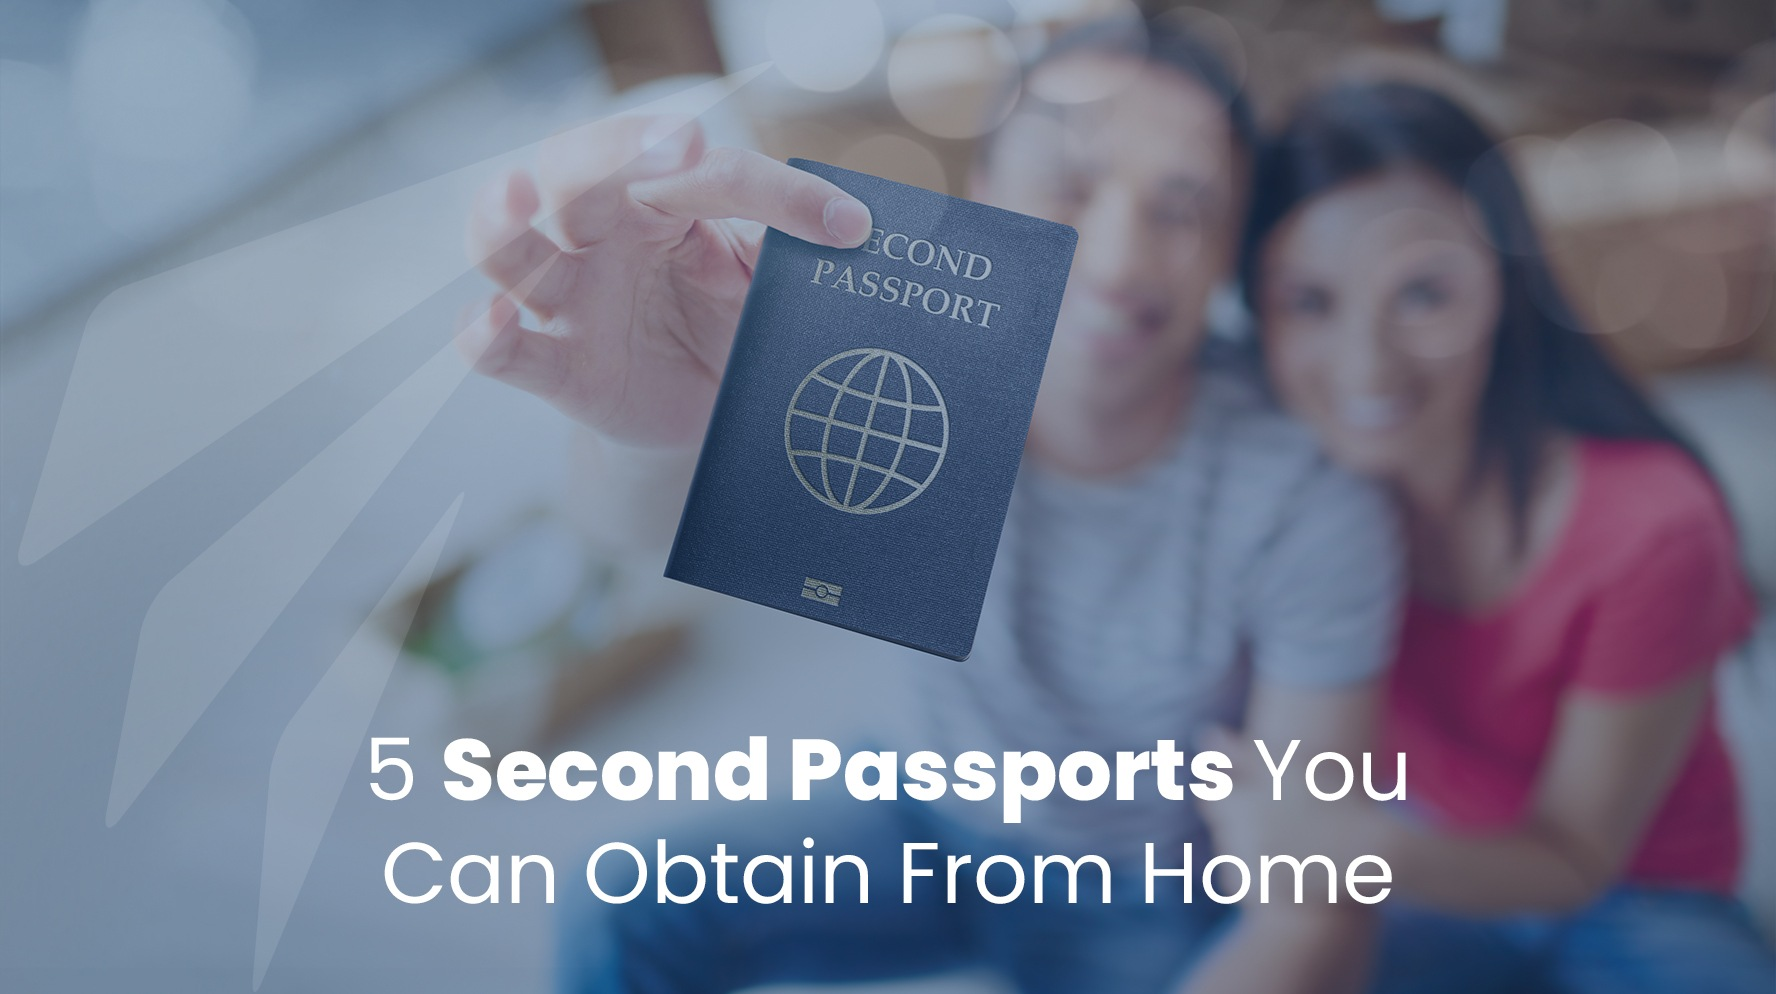 5 Second Passports you Can Obtain Without Having to Travel